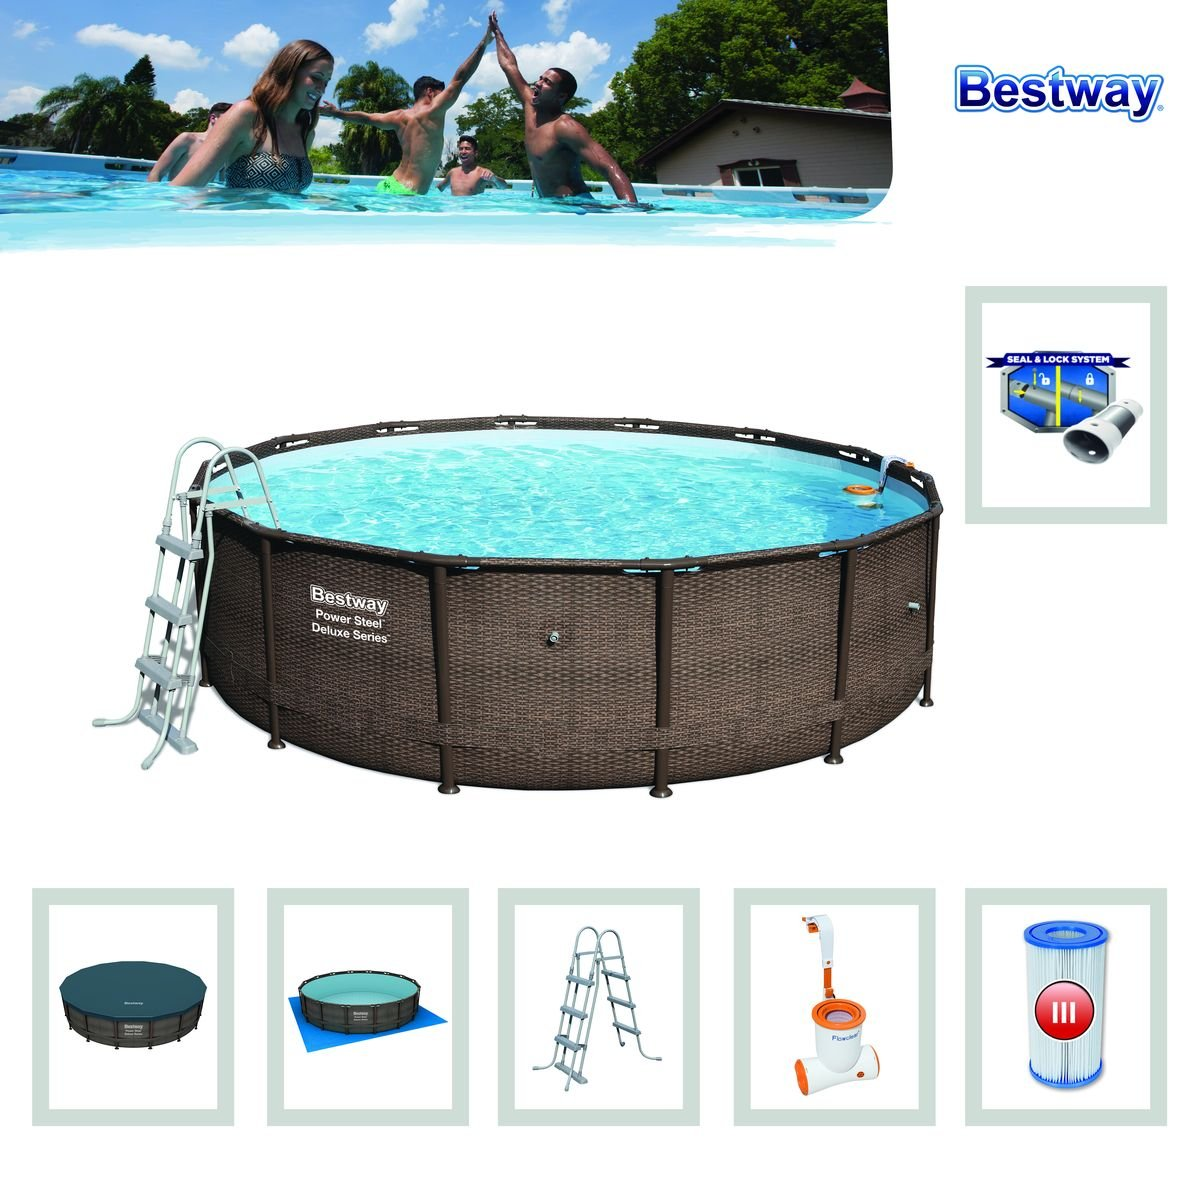 Bestway 56664 Piscina Power Steel Diseño Rattan, 13030 litros, M: Amazon.es: Jardín